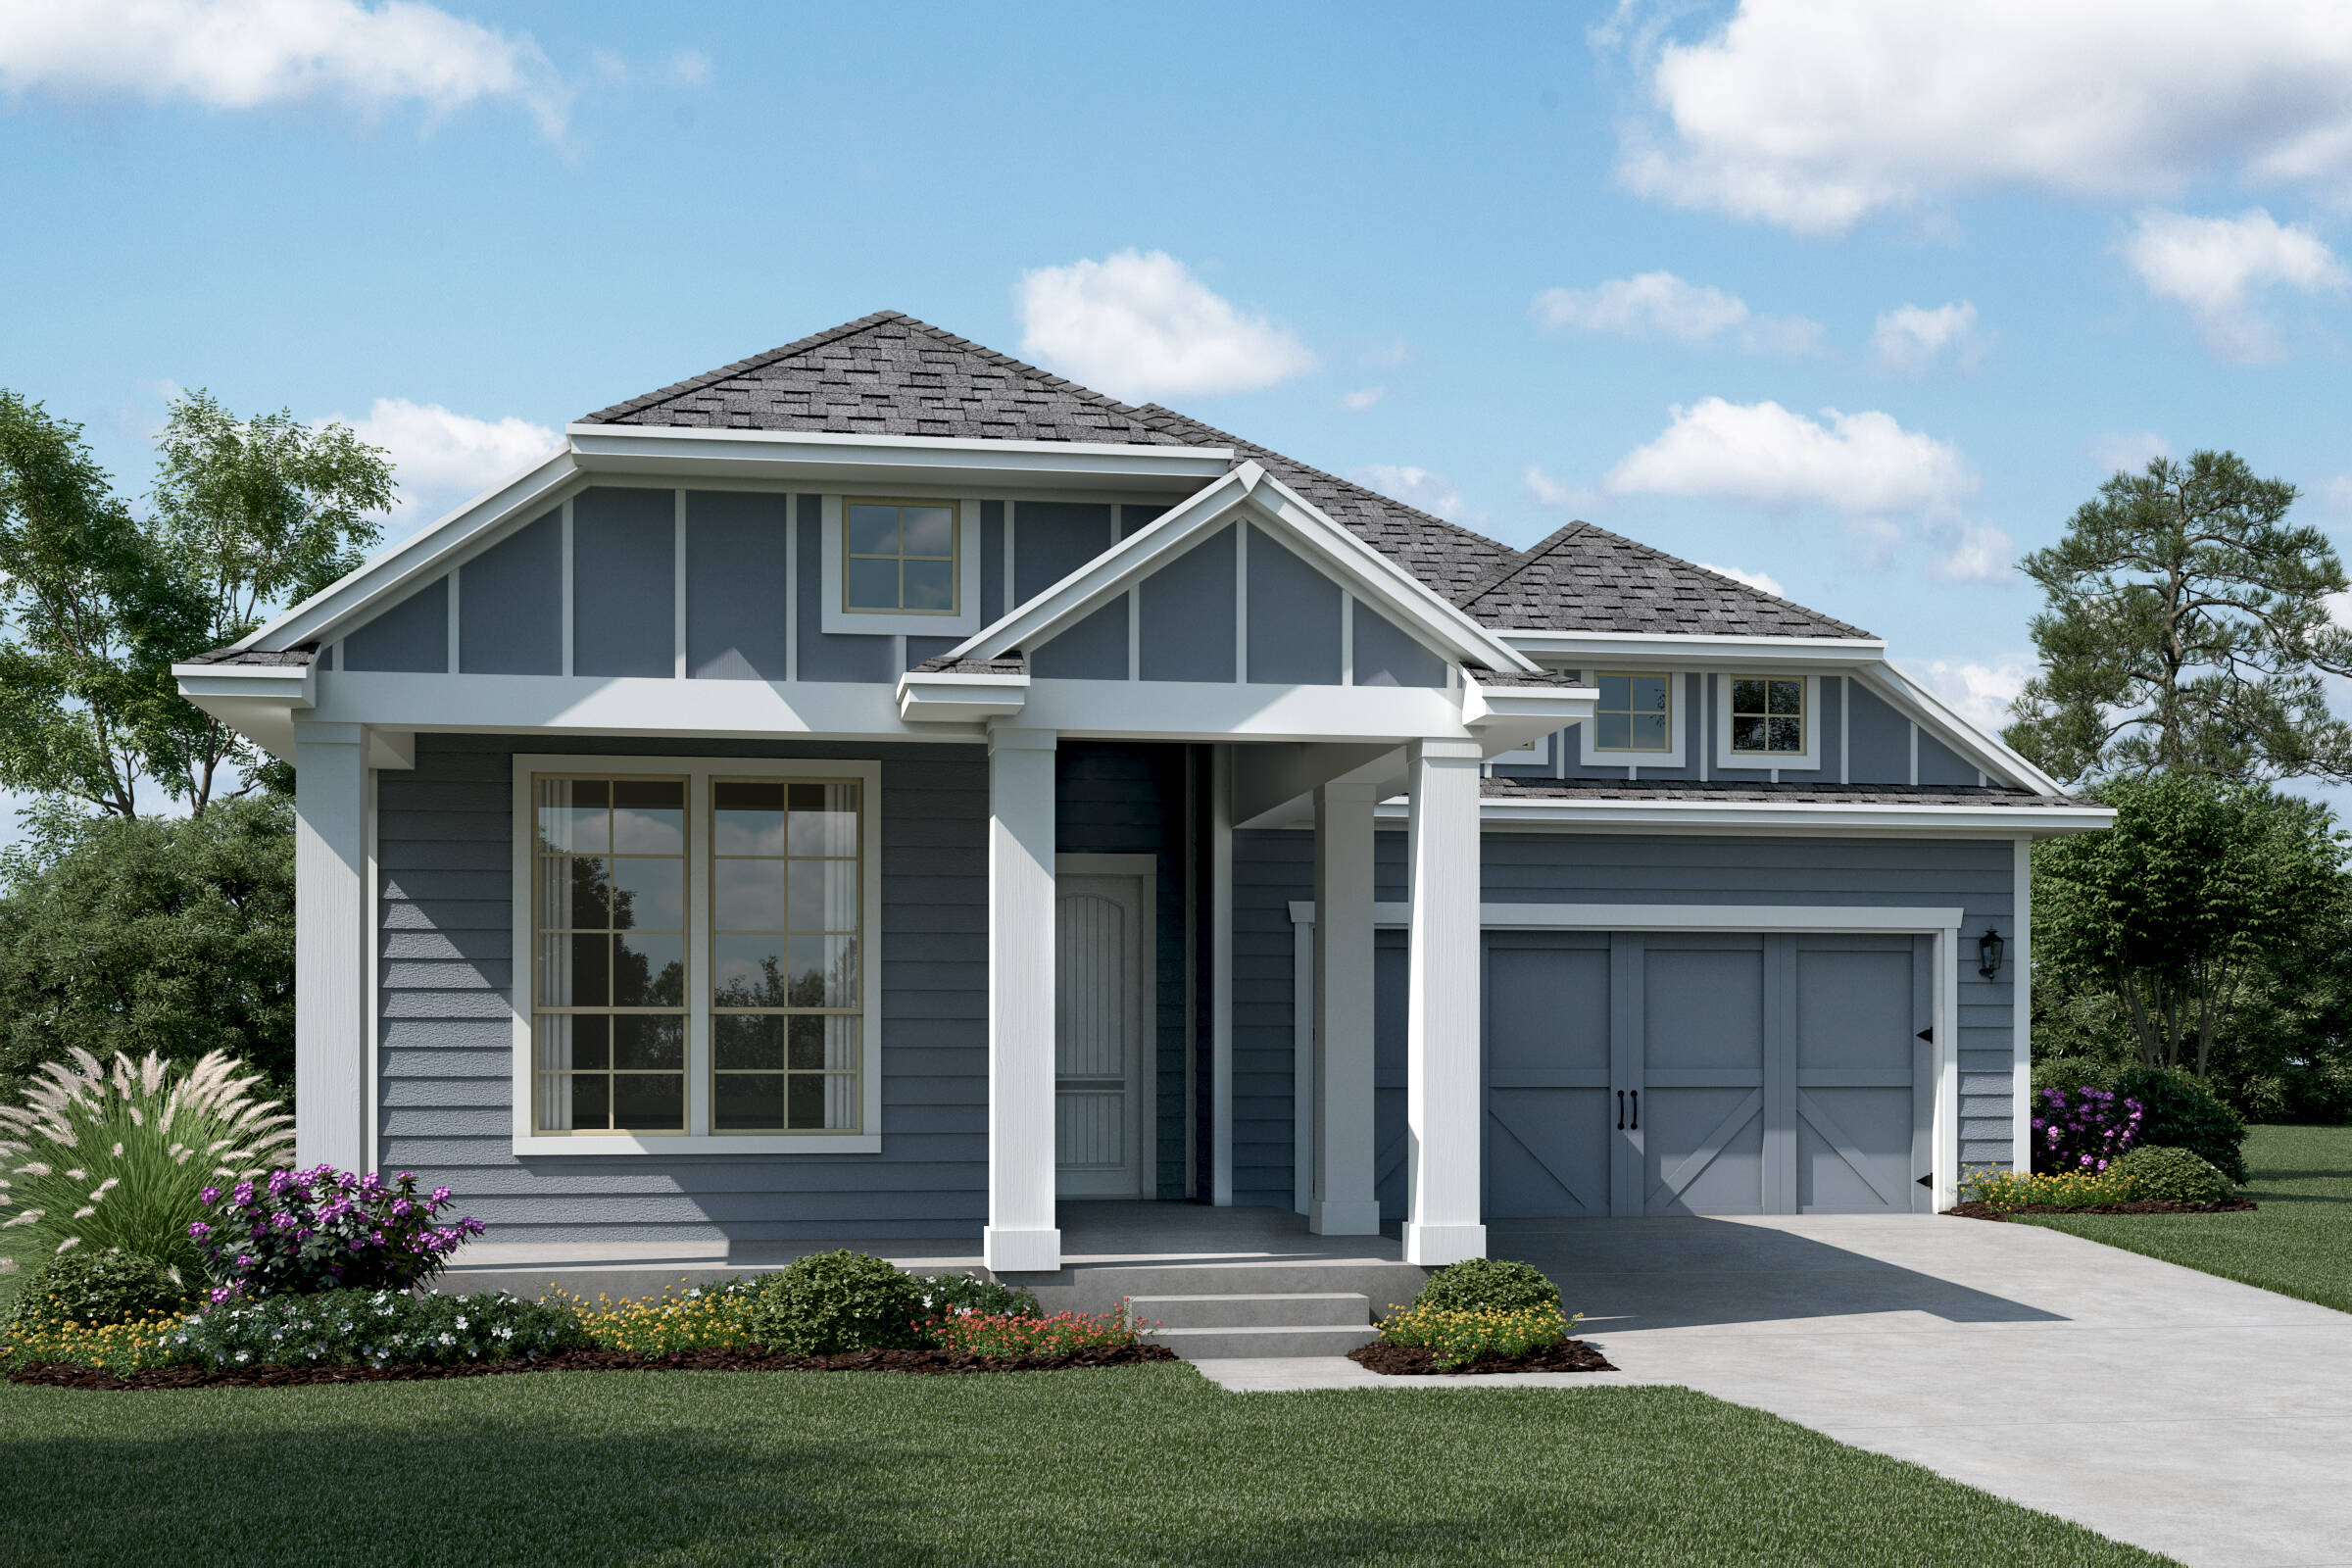 Daytona A Siding new homes dallas tx